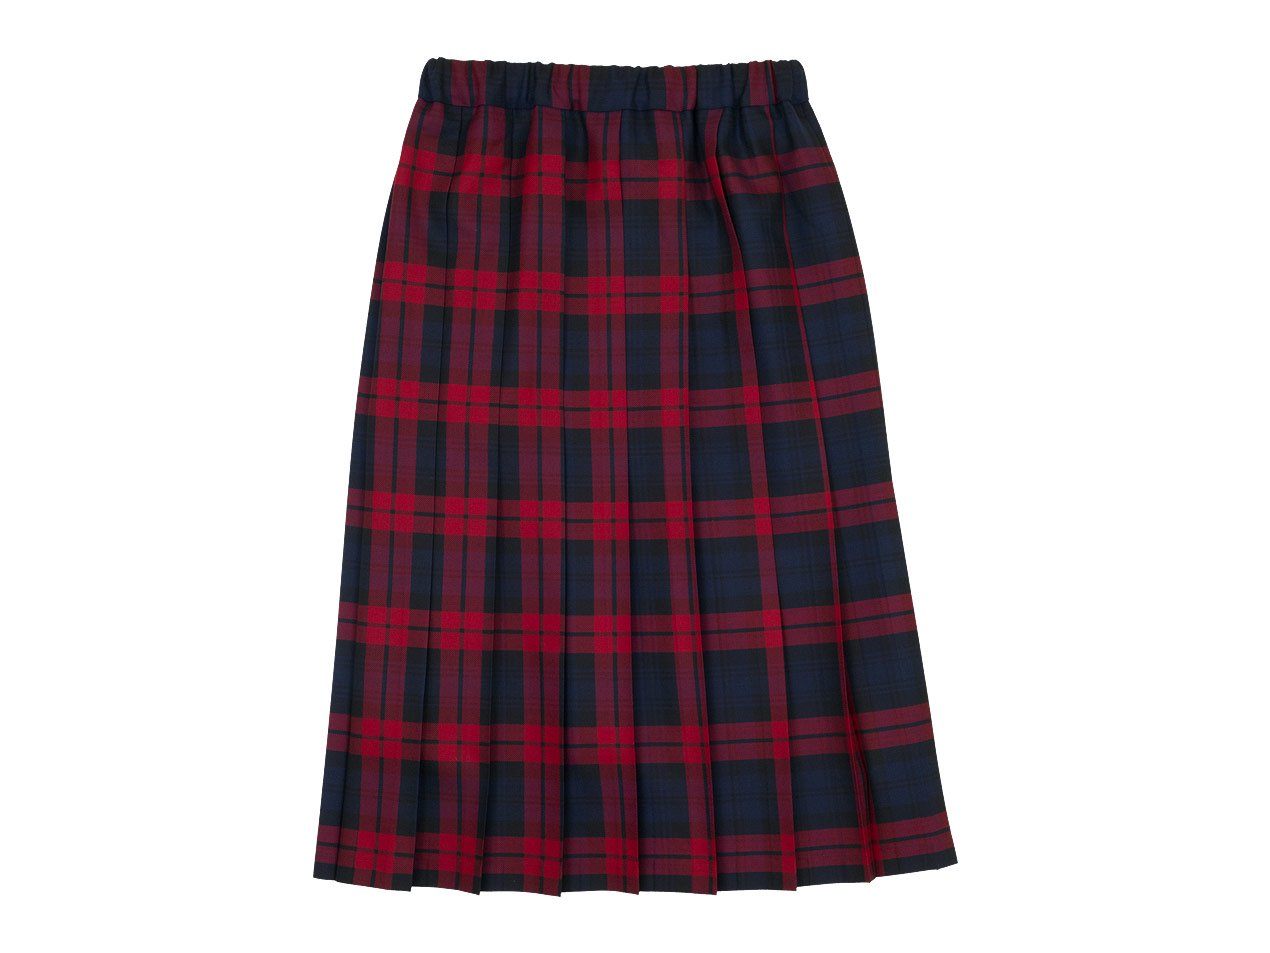 Charpentier de Vaisseau Bride O'neil of Dublin プリーツスカート Long NAVY x RED CHECK